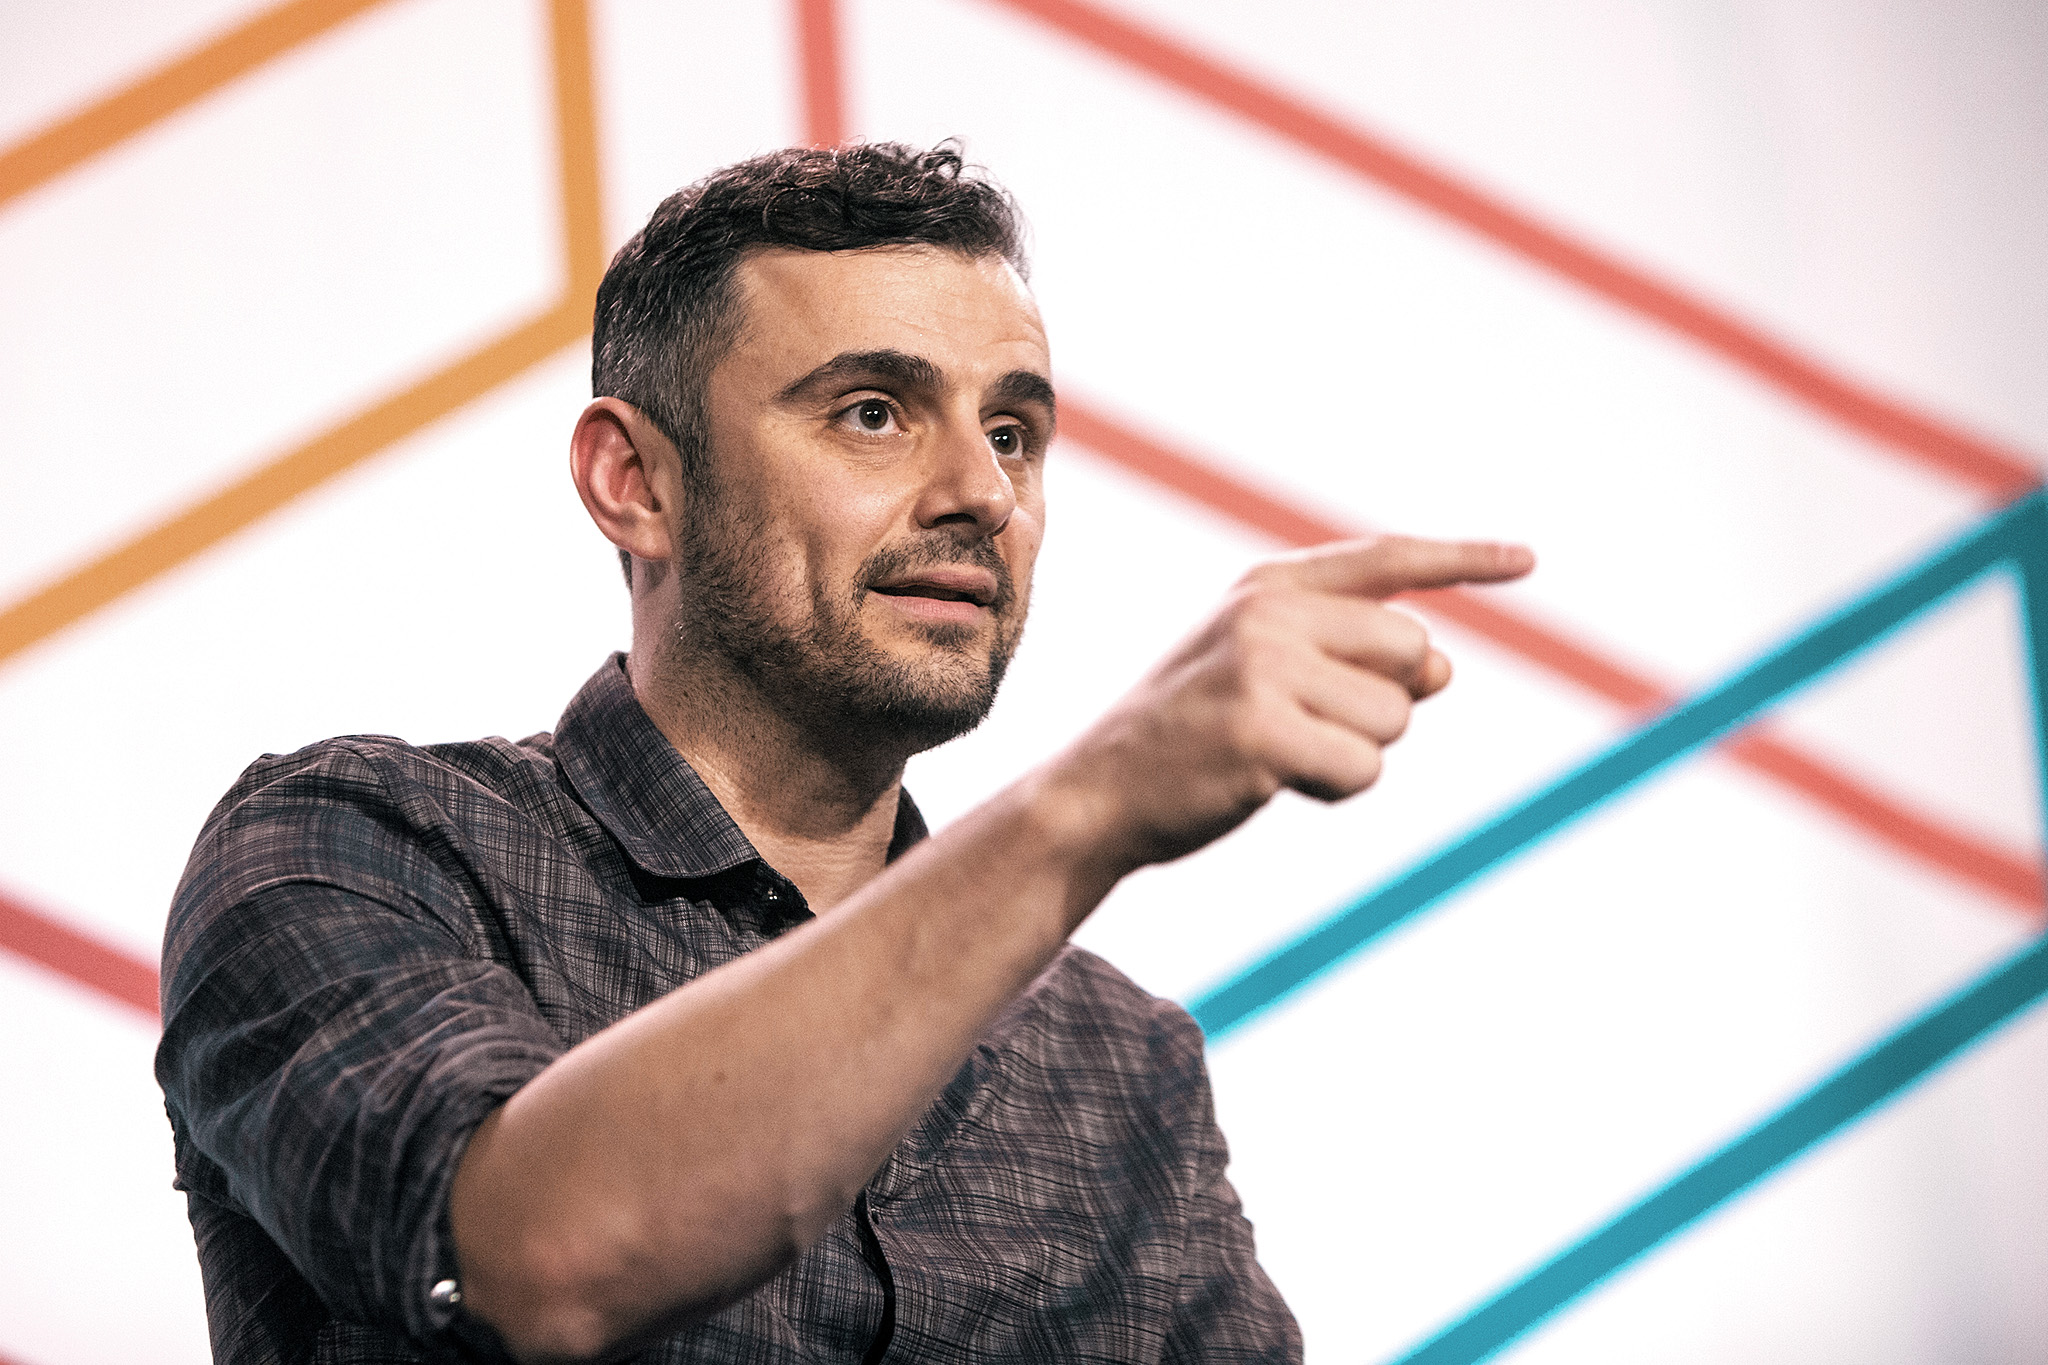 Top 6 Gary Vaynerchuk Keynotes You Must Watch